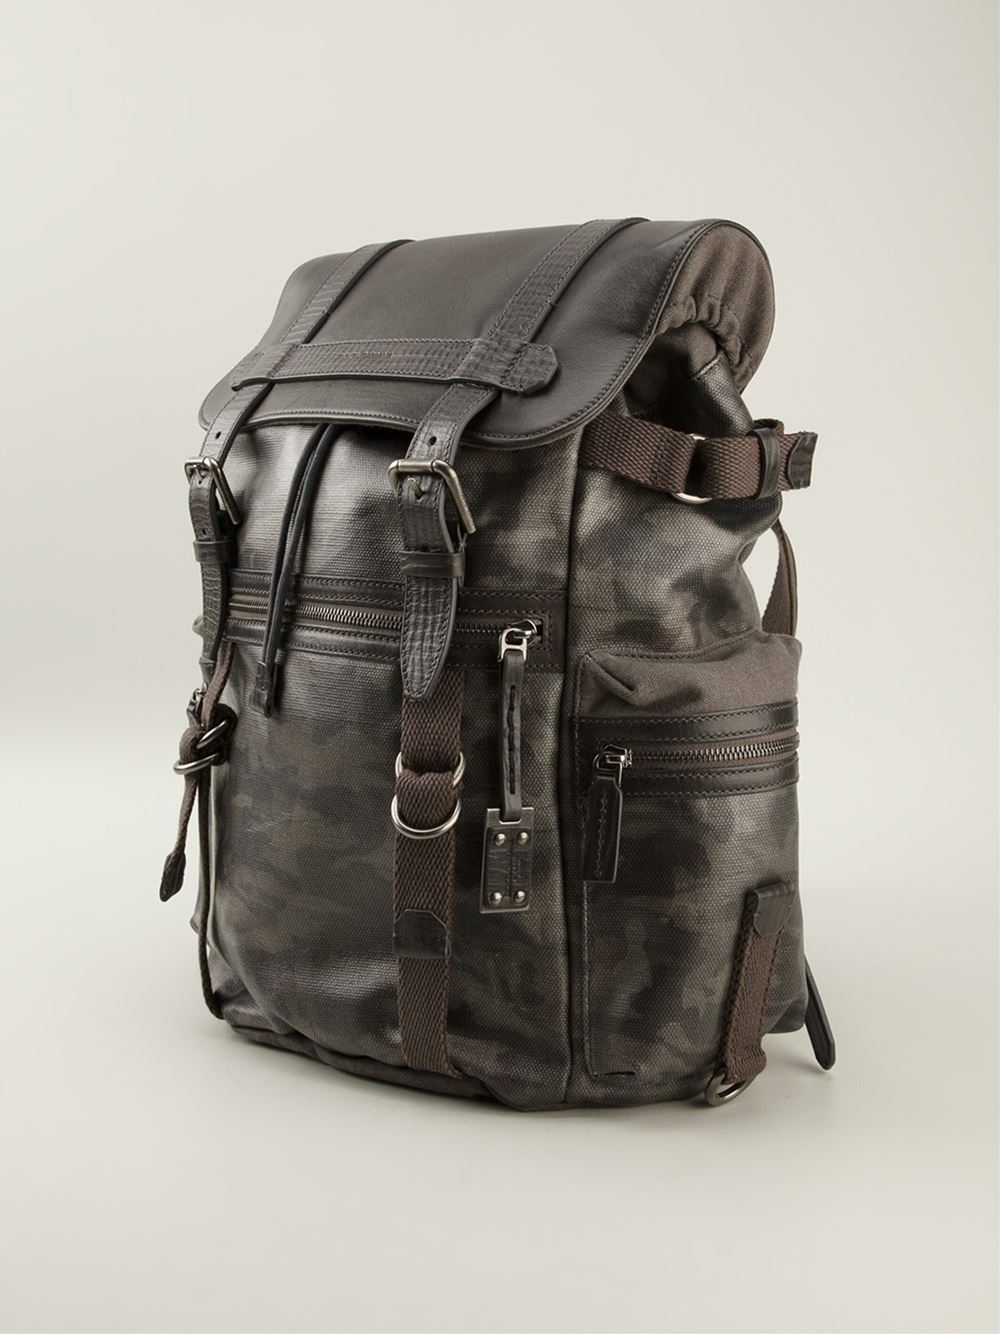 Dolce & gabbana Camouflage Backpack in Gray for Men | Lyst